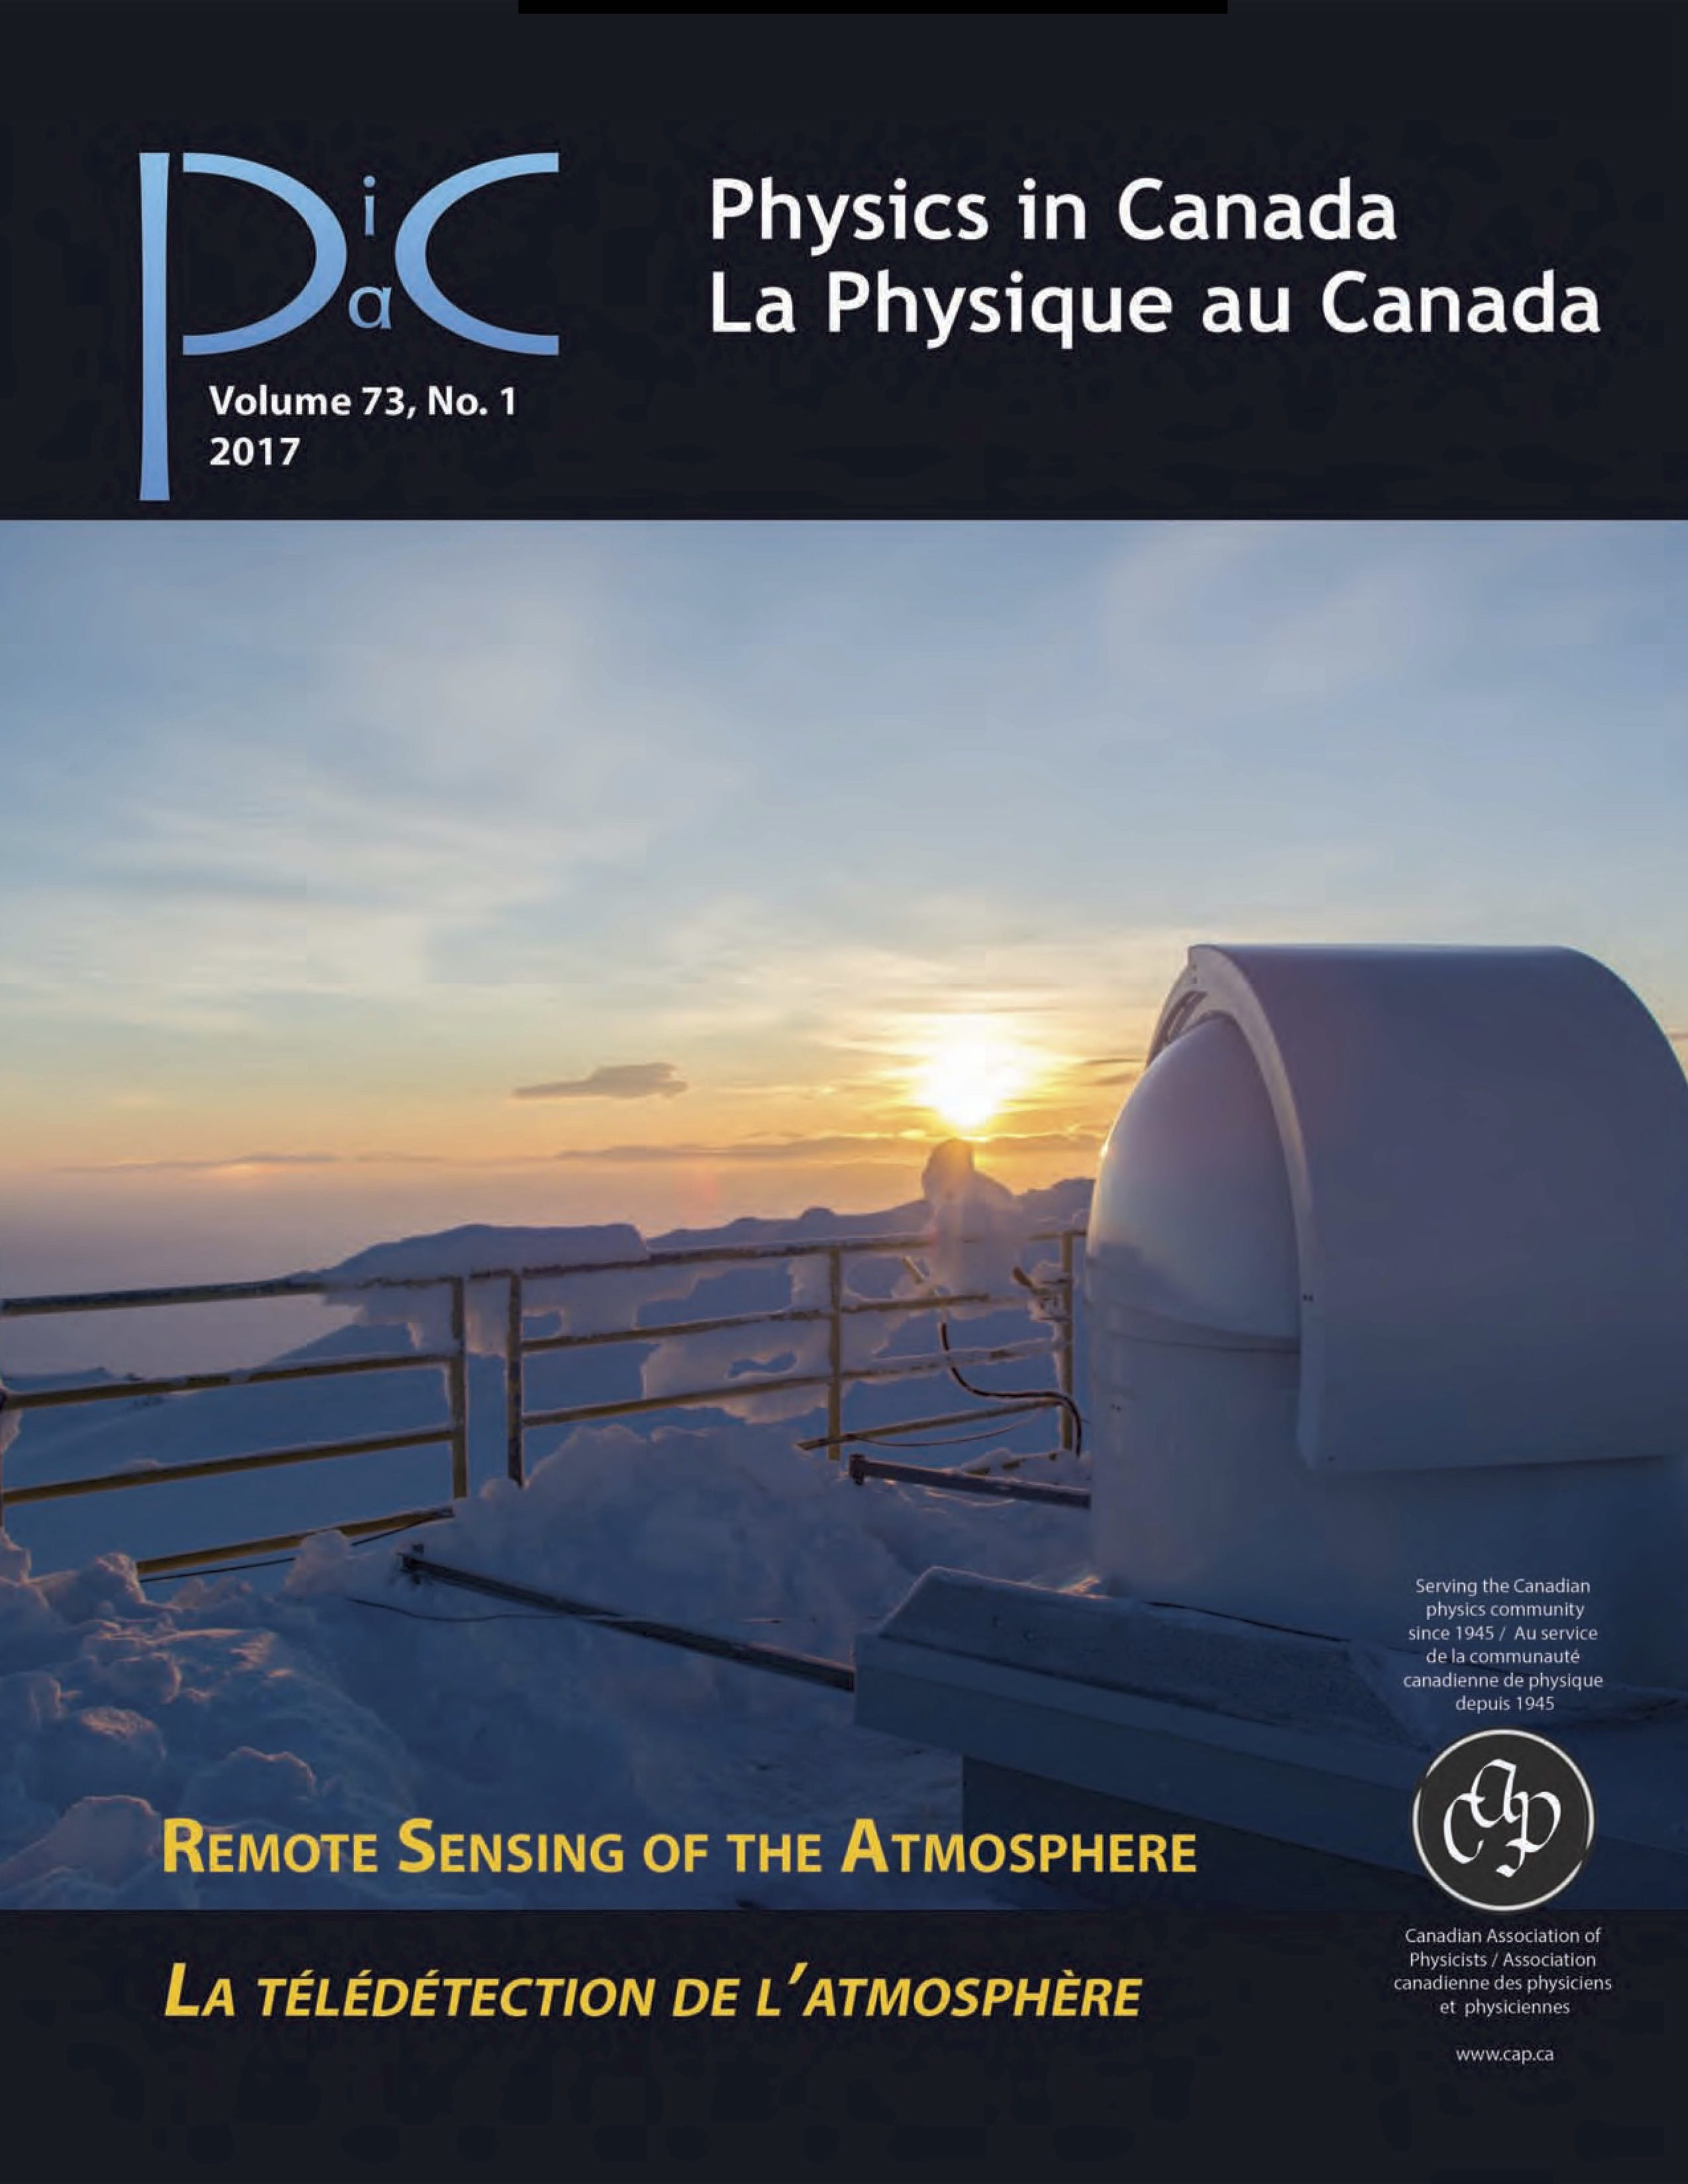 Physics In Canada Cover (2017 Issue 01), photo by Dan Weaver